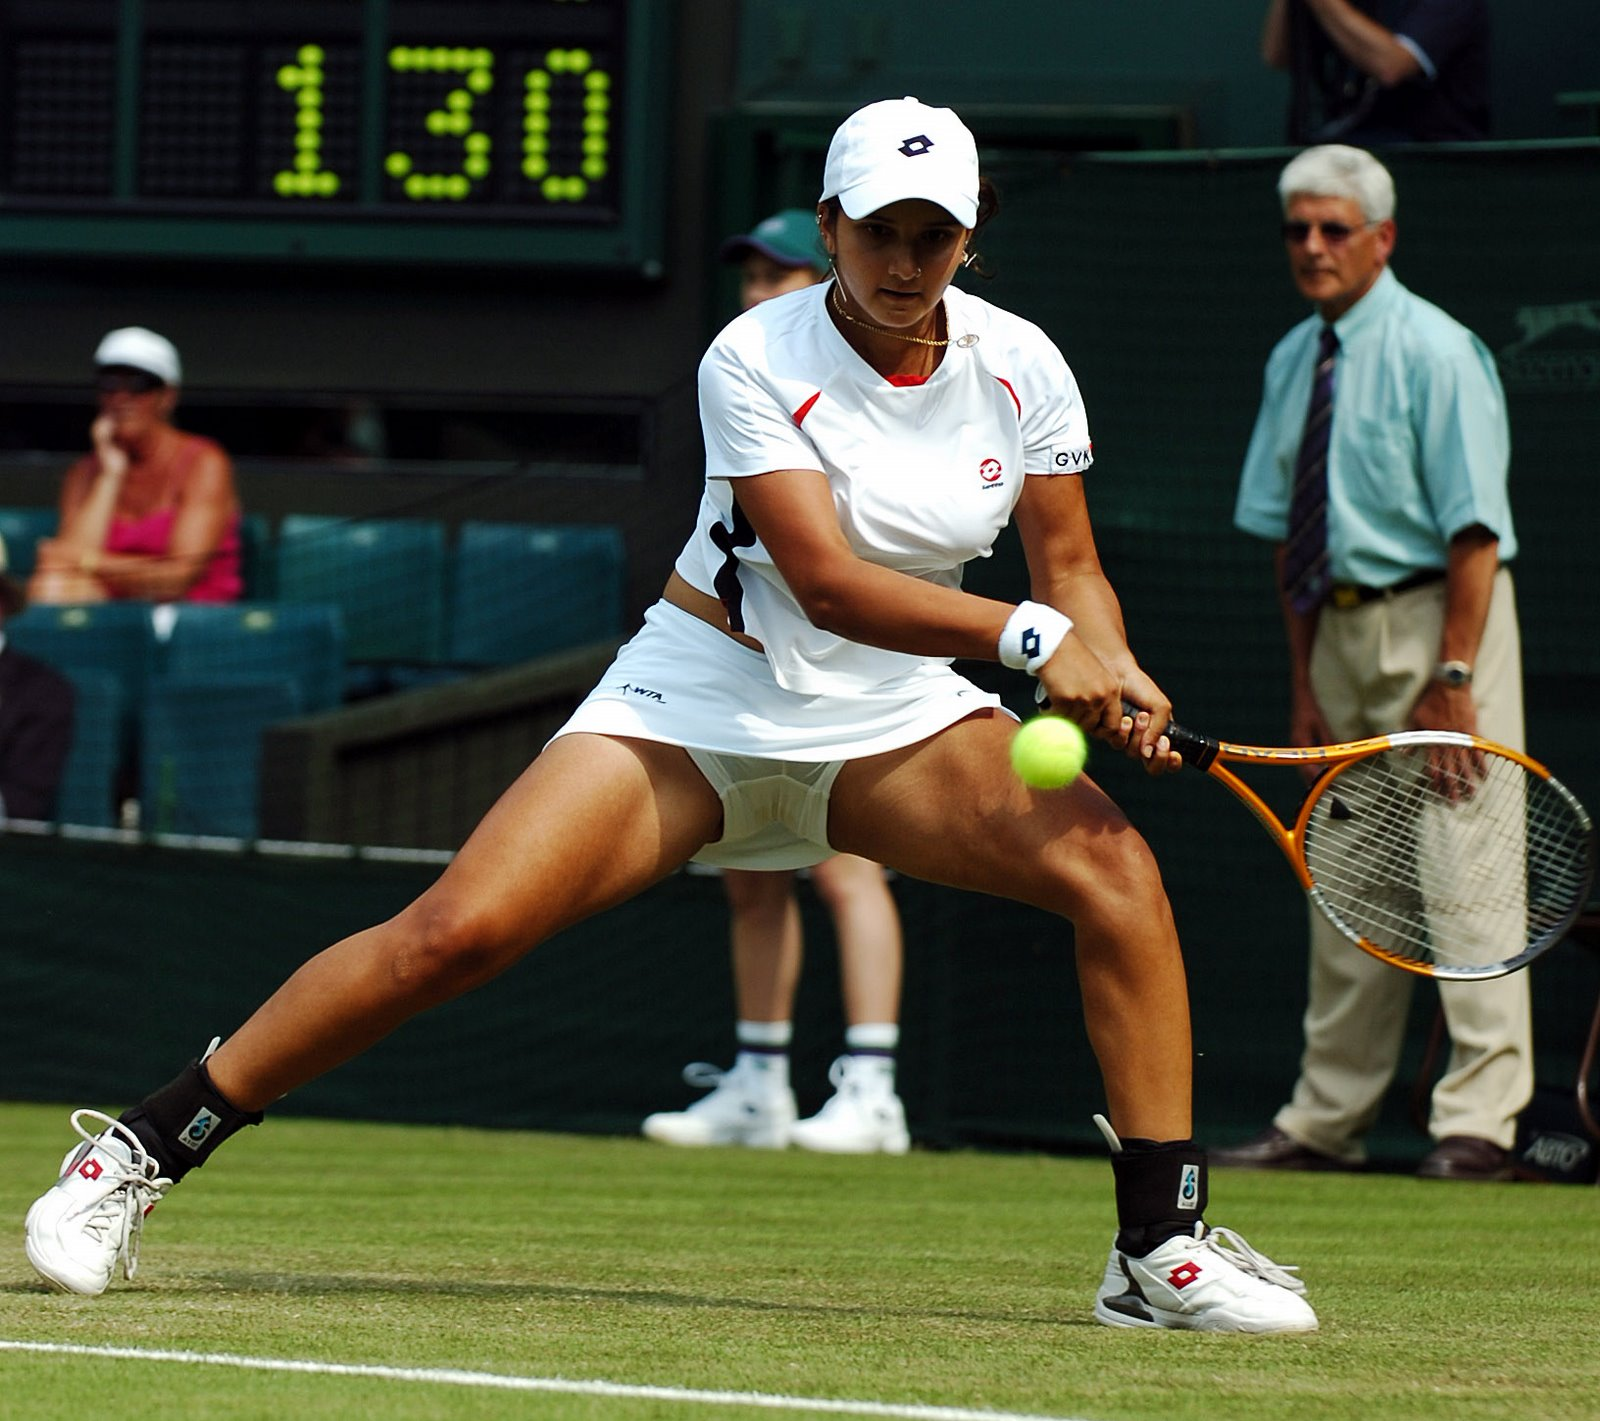 Sania Mirza Hot Pics When She Was Playing Gallery - Hot -9517